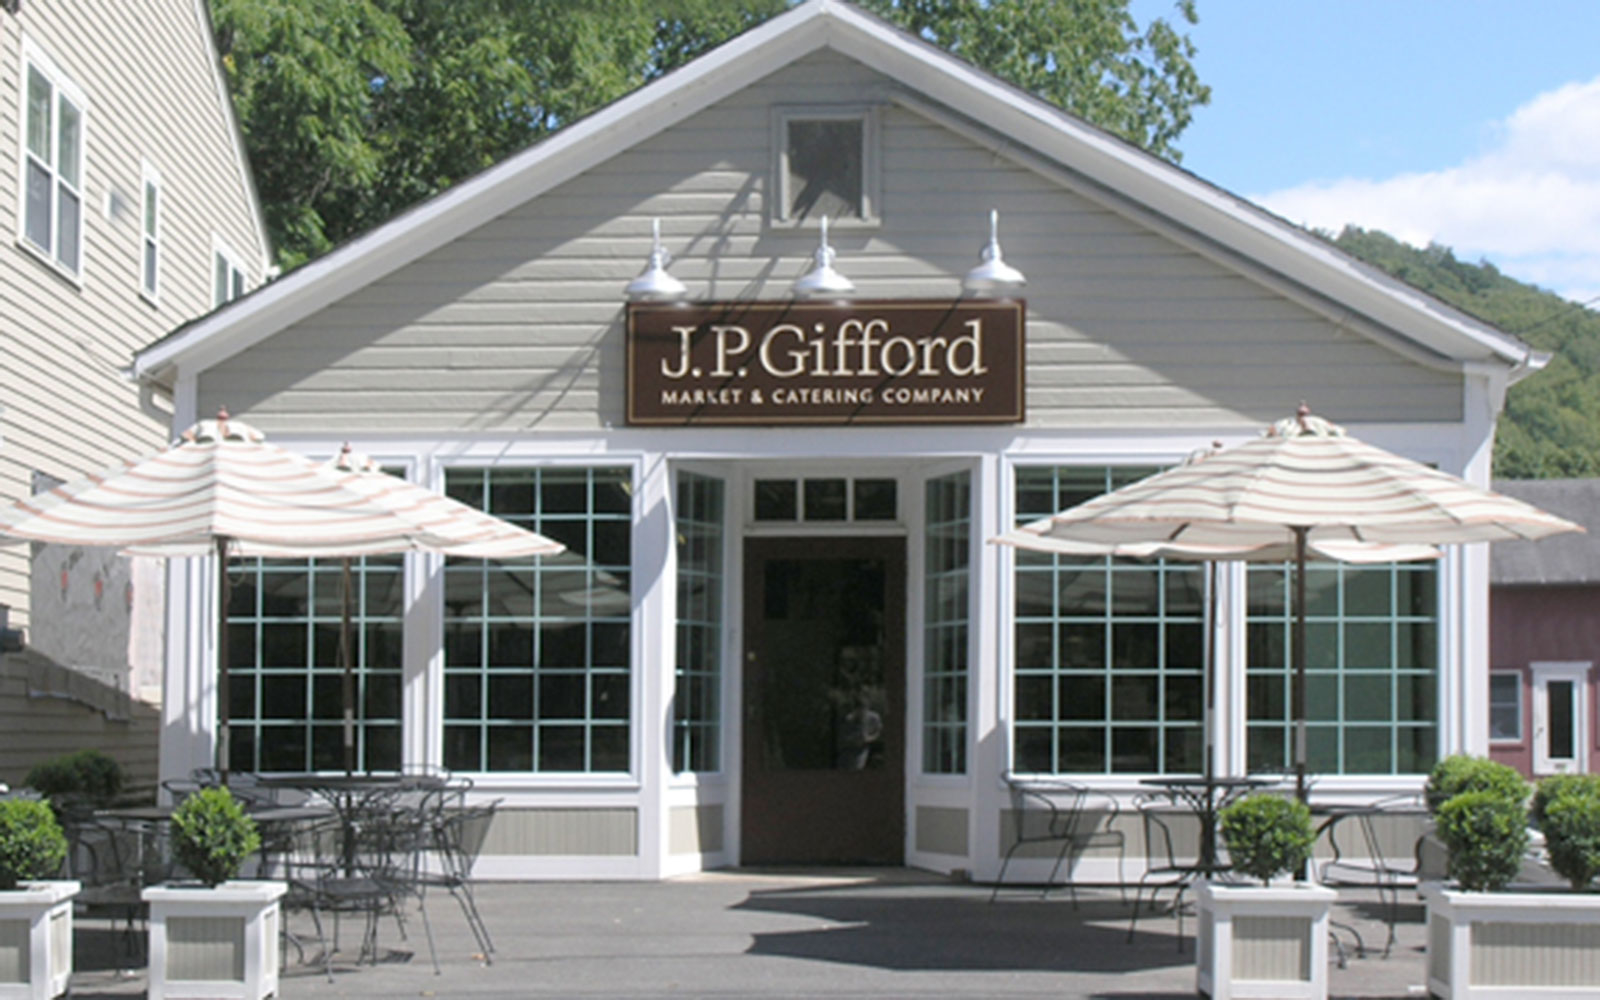 J.P. Gifford Market & Catering Company in Kent, Connecticut